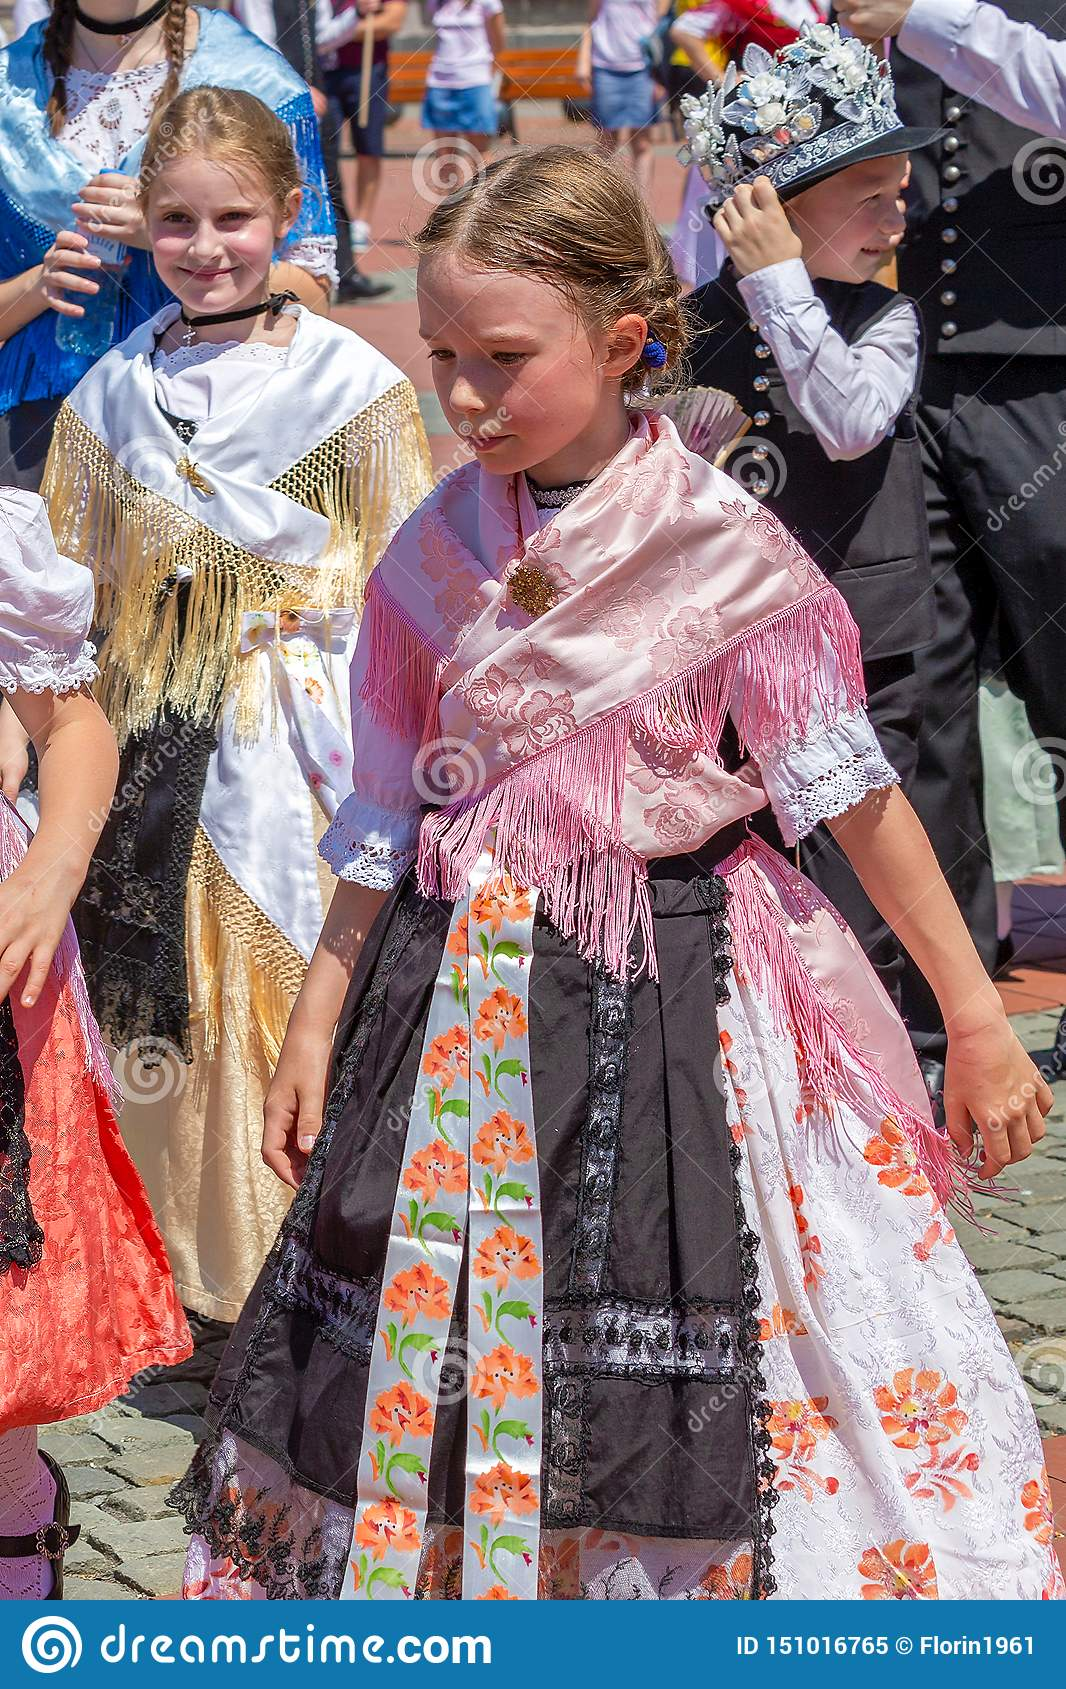 Childs at the parade of the Swabian folk costumes